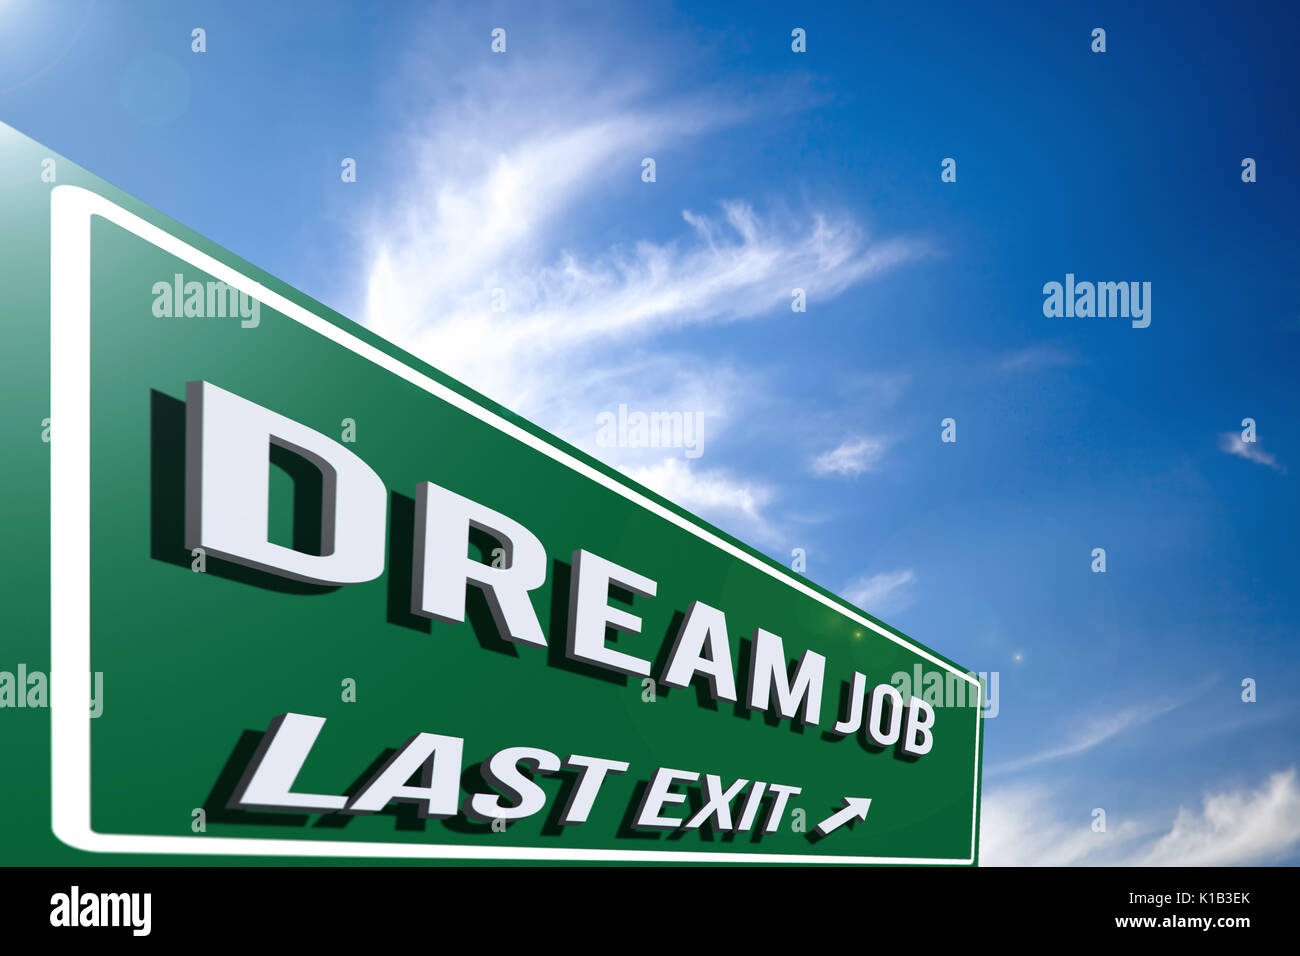 Dream Job Stock Photos Amp Dream Job Stock Images Alamy